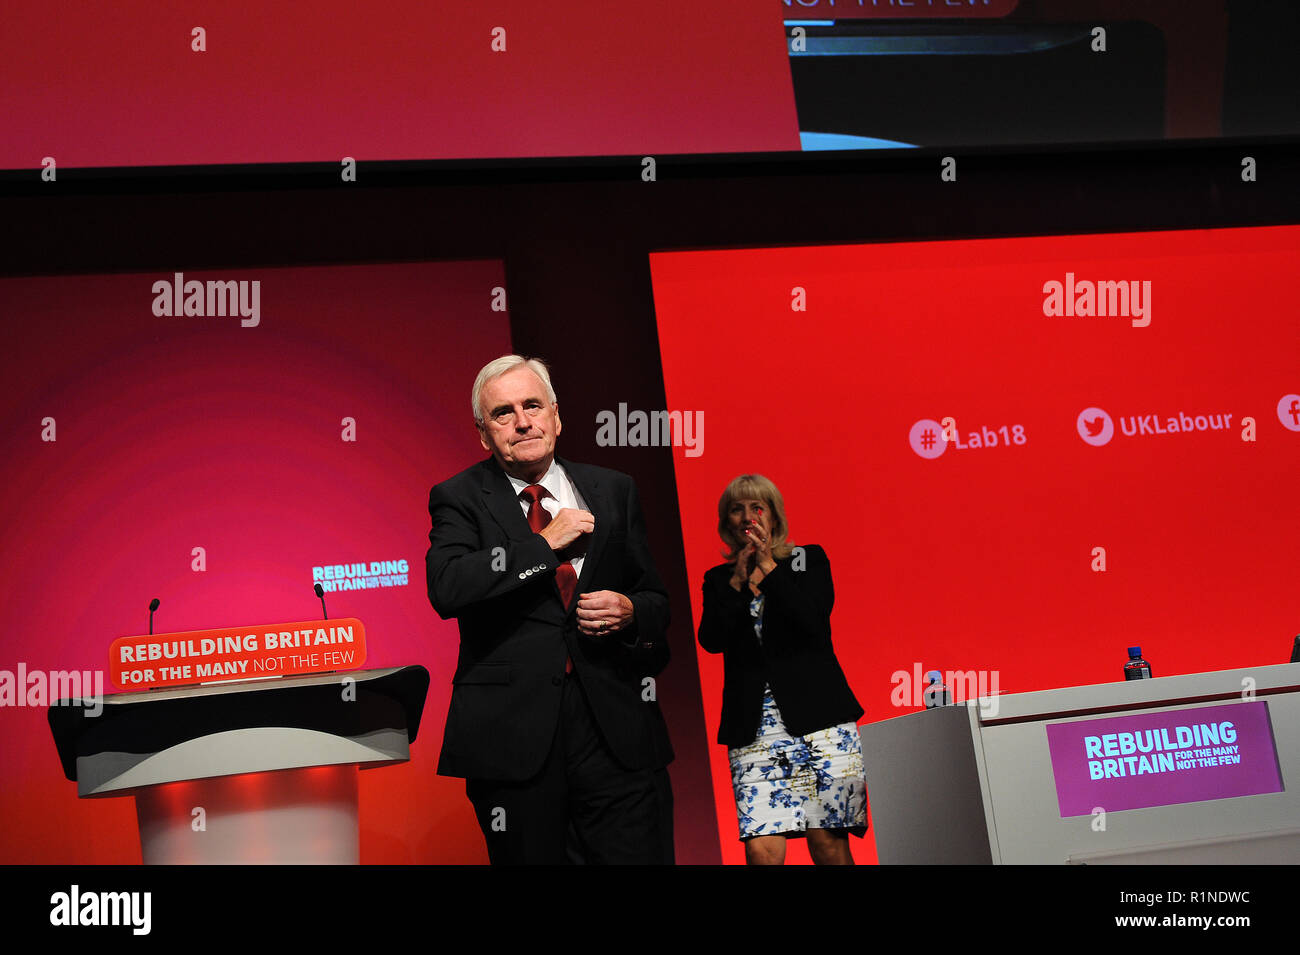 Liverpool, England. 24th September, 2018.  John McDonnell MP, Shadow Chancellor, at the completion of his keynote speech on the theme of Private Inves - Stock Image